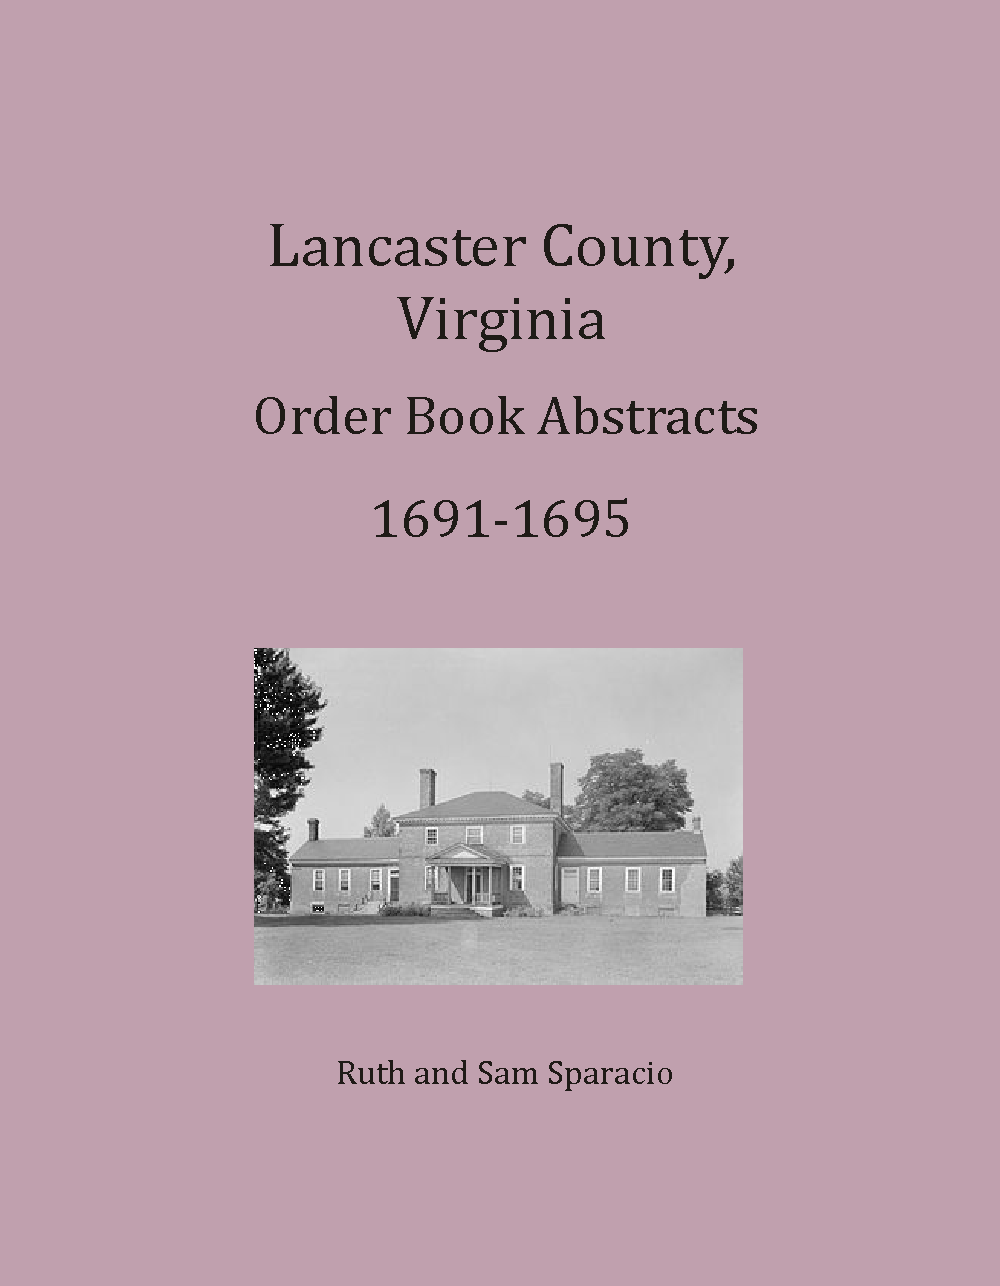 Lancaster County, Virginia Order Book, 1691-1695